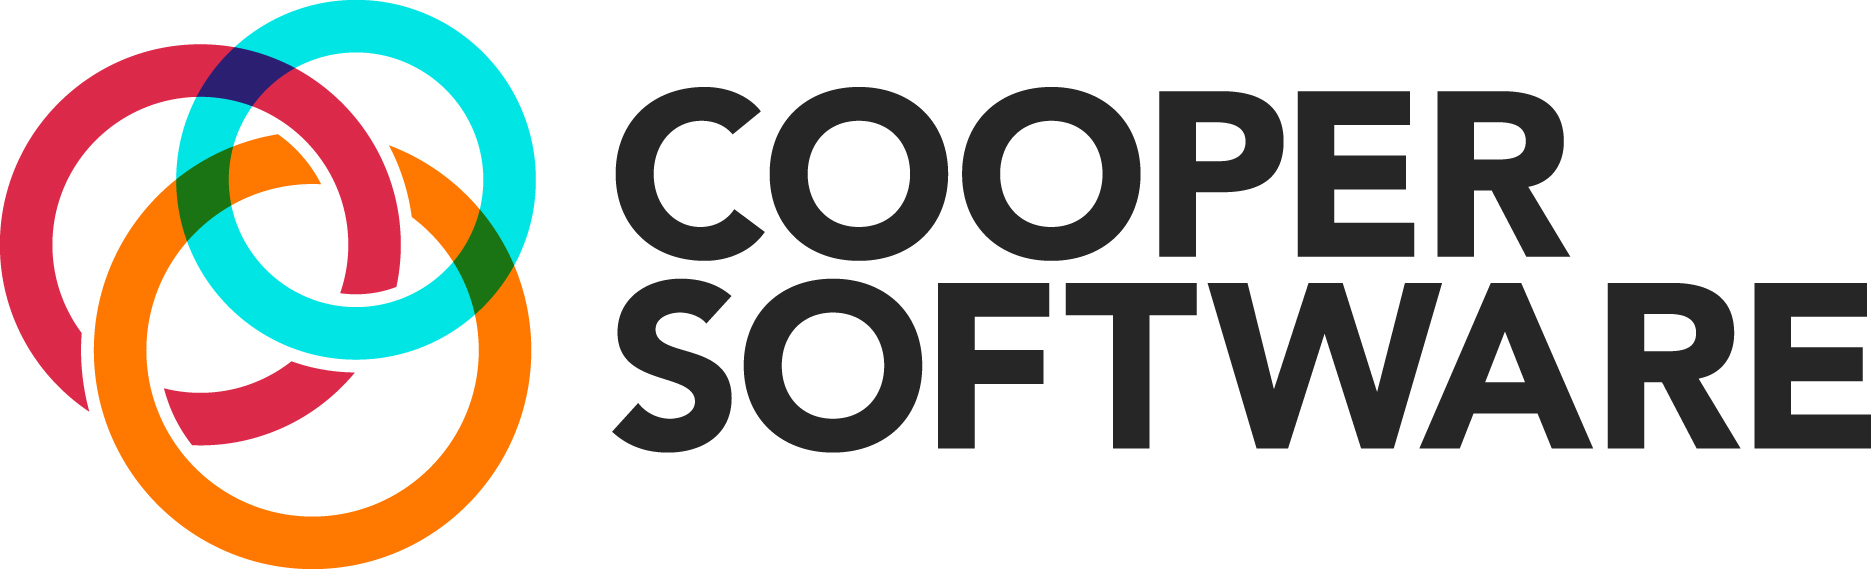 Corporate Golf Edinburgh Cooper Software